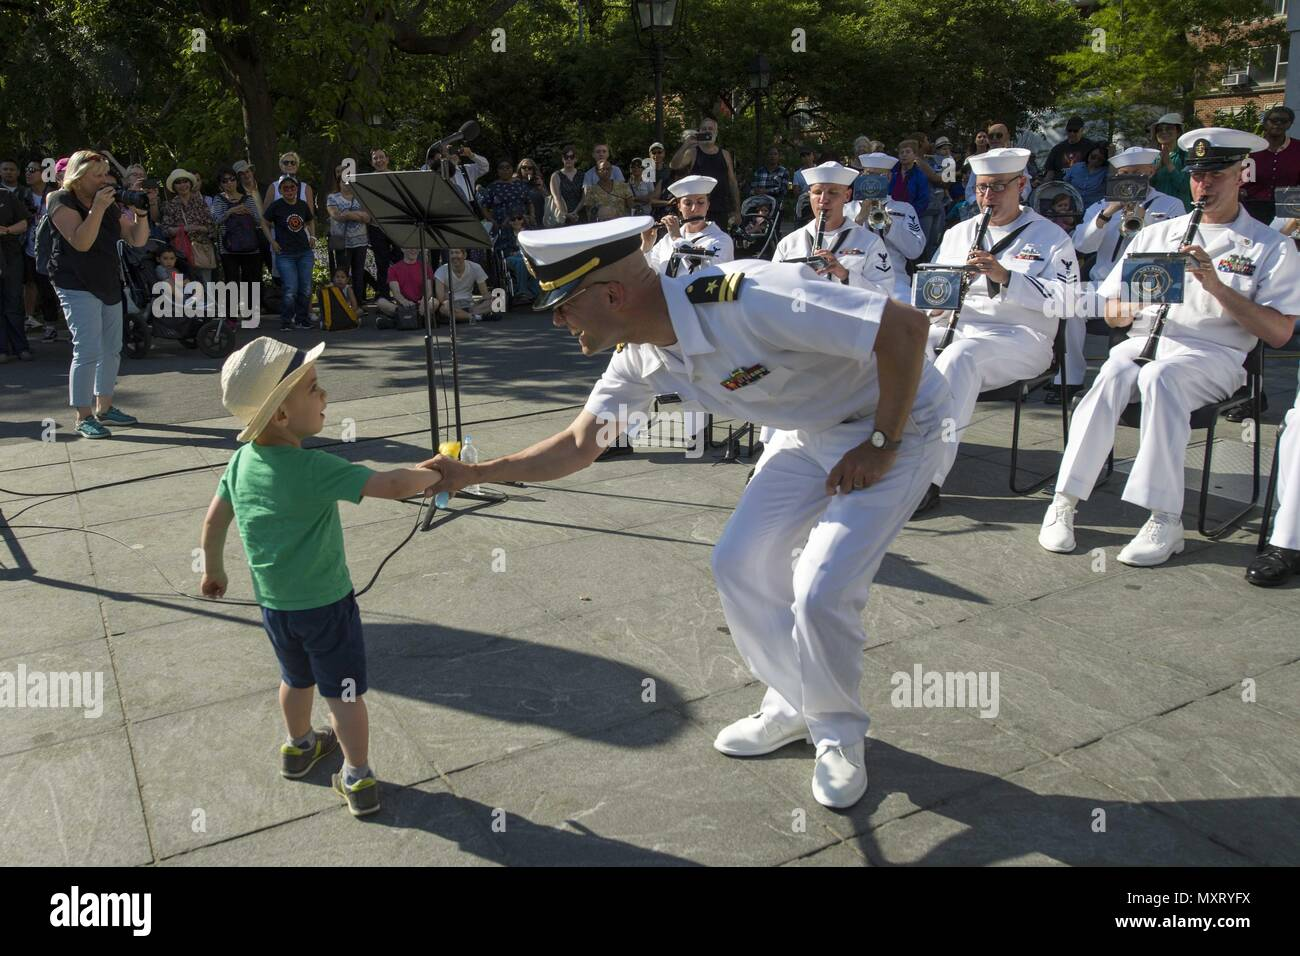 180524-N-BY095-0353 NEW YORK (May 24, 2018) Lt. Joel Borrelli-Boudreau shakes a young boy's hand during the Navy Band Northeast performance at Washington Square Park during Fleet Week New York (FWNY), May 24, 2018. Now in its 30th year FWNY is the city's time-honored celebration of the sea services. It is an unparalleled opportunity for the citizens of New York and the surrounding tri-state area to meet Sailors, Marines and Coast Guardsmen, as well as witness firsthand the latest capabilities of today's maritime services. (U.S. Navy photo by Mass Communication Specialist 3rd Class Maria I. Alv - Stock Image